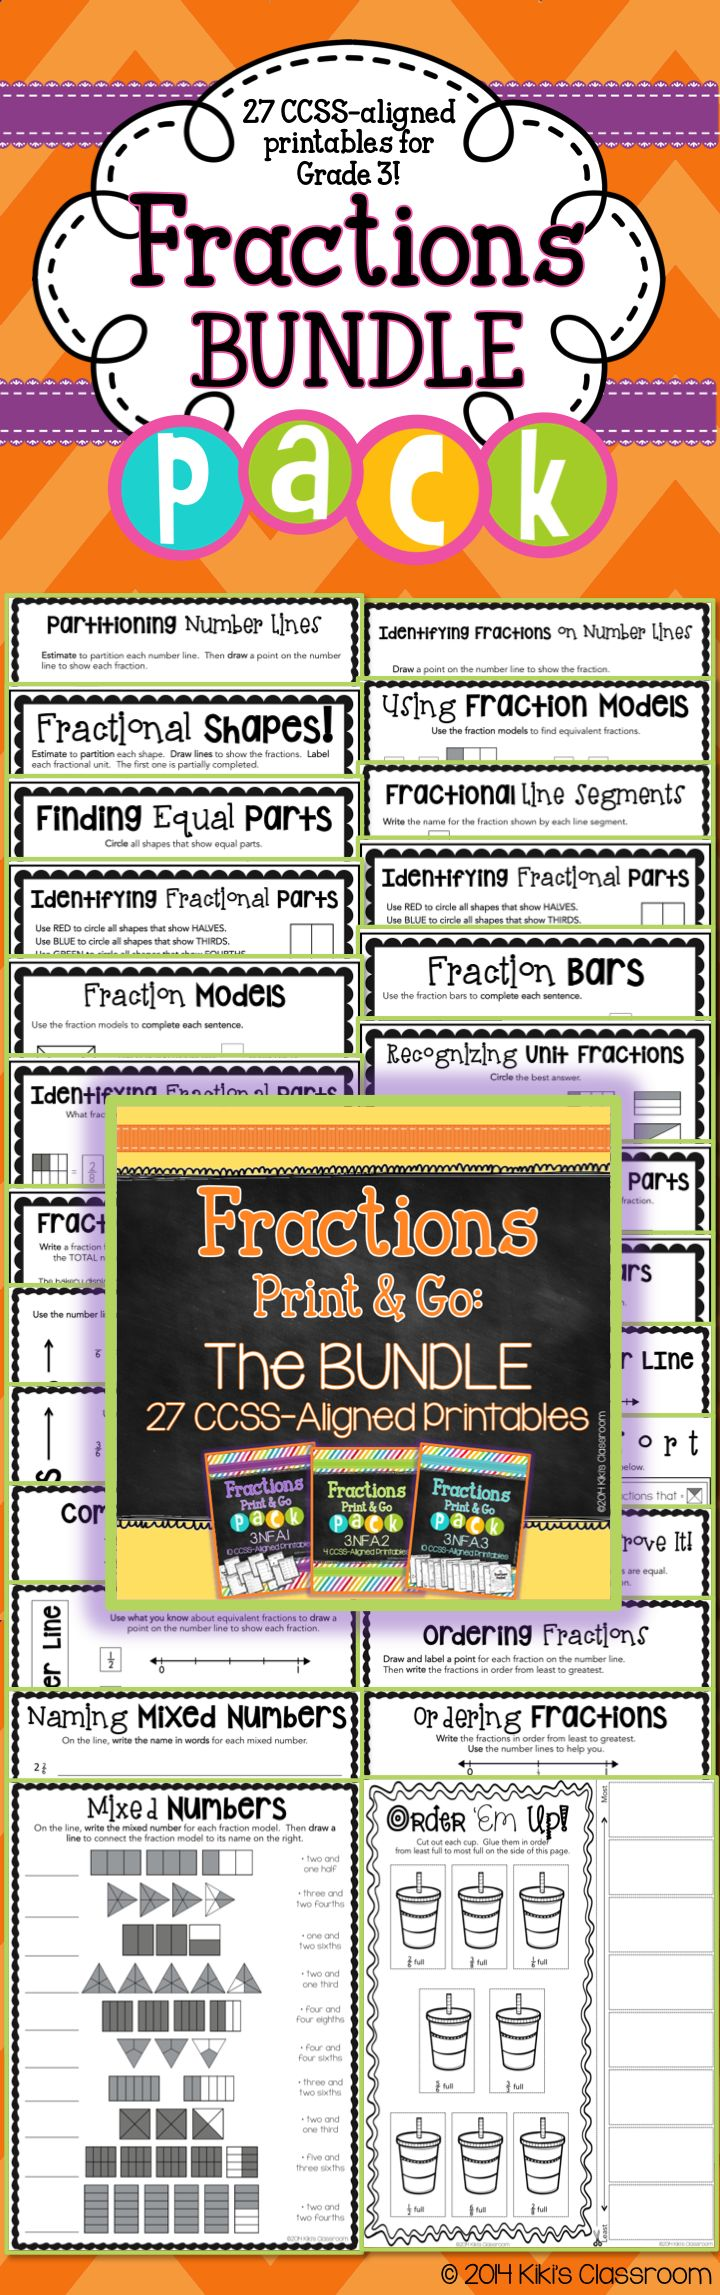 """Grade 3 Fractions! """"Excellent bundle! I'm so pleased with this product. It's got everything I need to help my students become proficient on the CC fractions standards."""""""